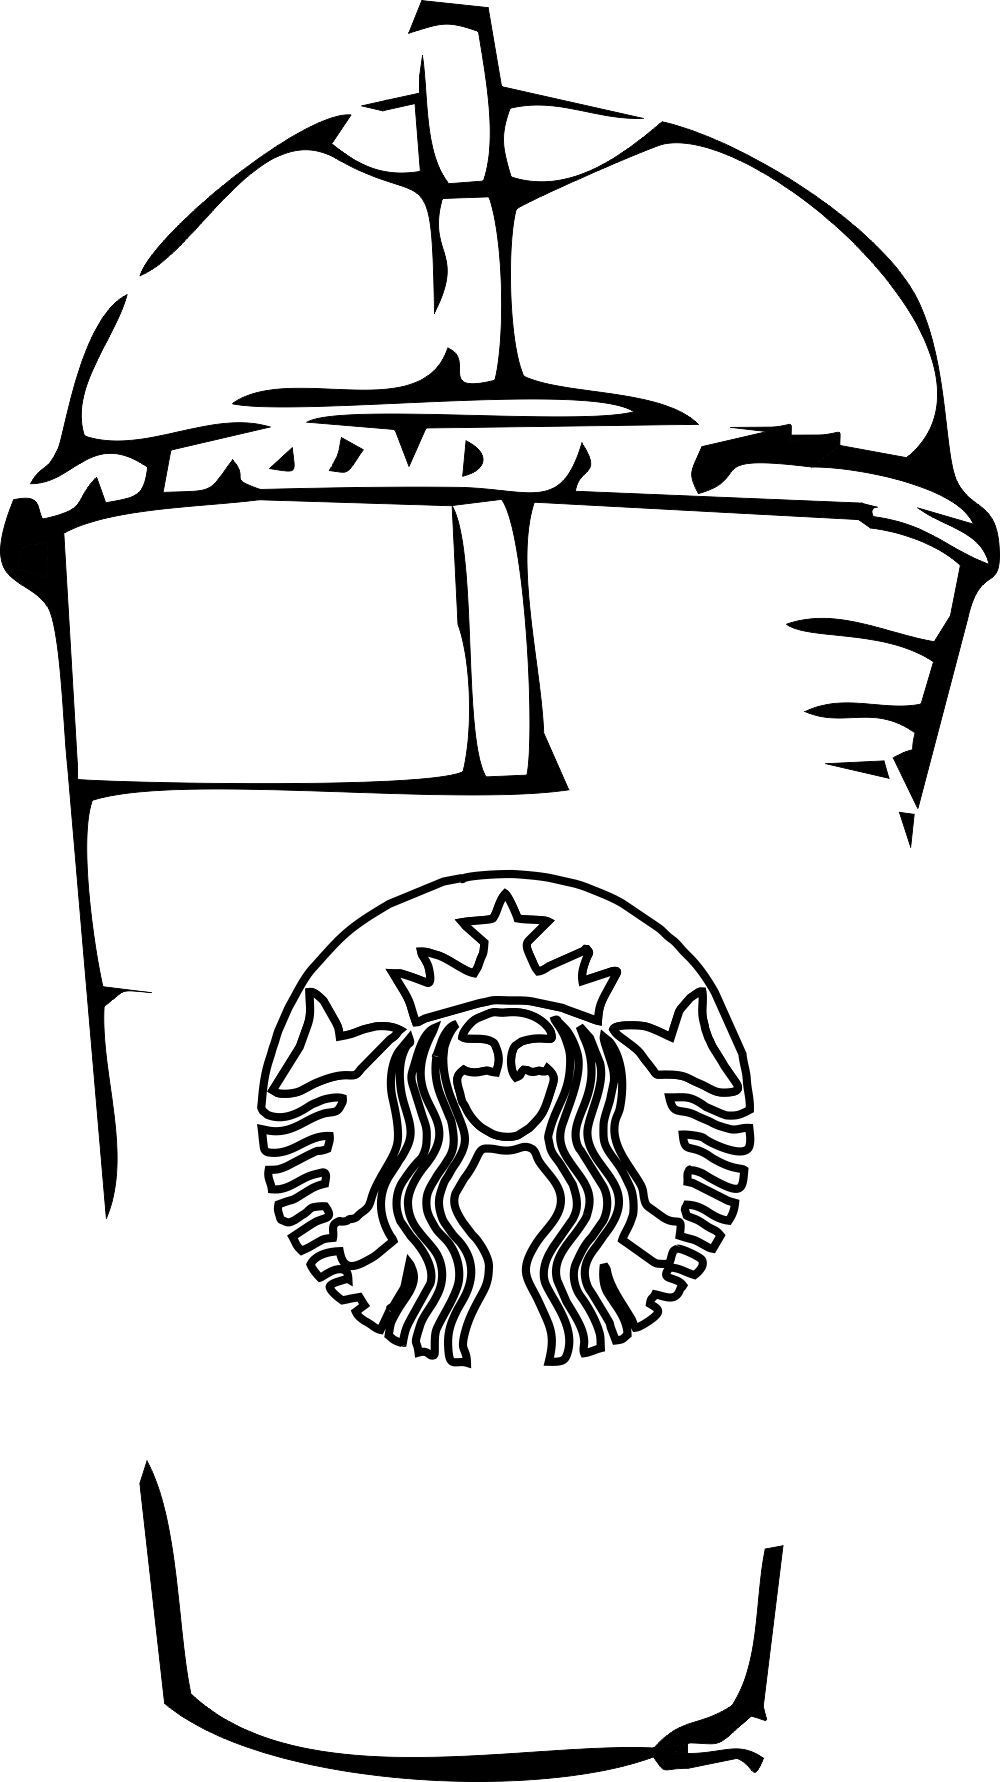 Starbucks Coloring Pages to Print coloringpagestoprint